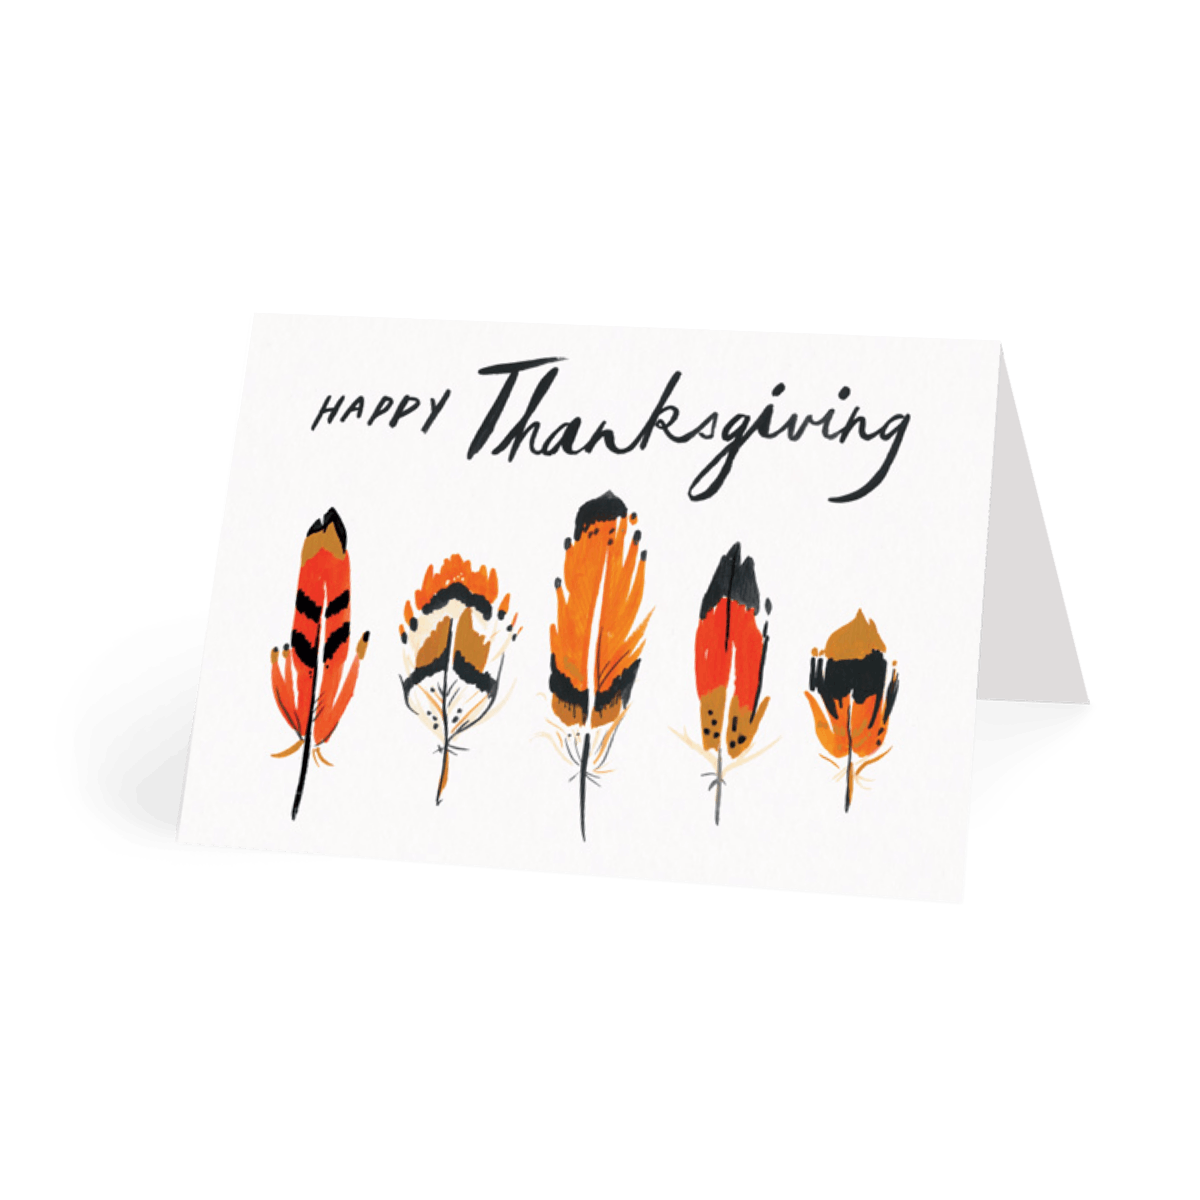 Https%3a%2f%2fwww.papier.com%2fproduct image%2f10991%2f14%2fthanksgiving feathers 2797 front 1473762213.png?ixlib=rb 1.1